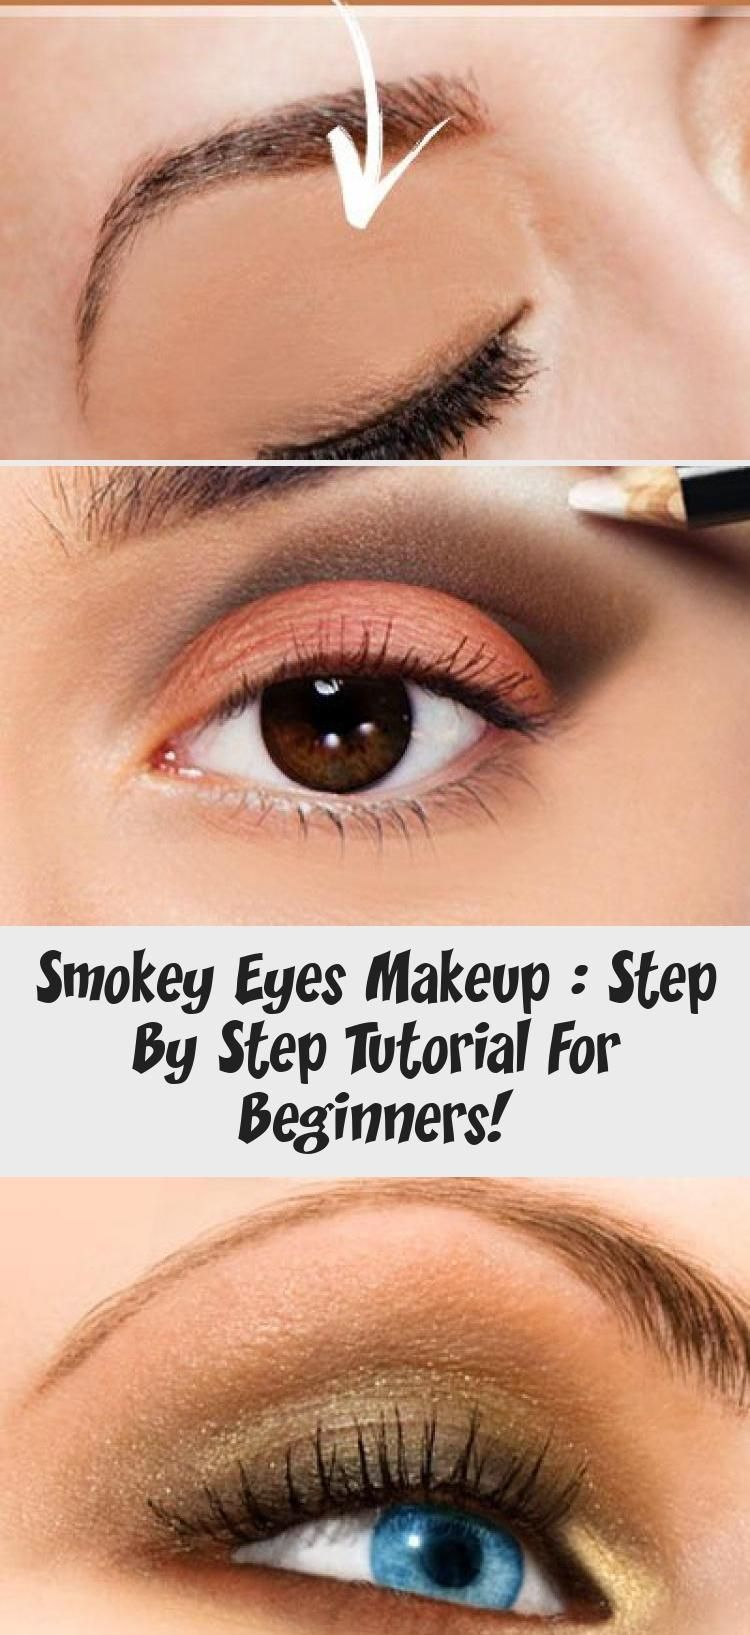 Smokey Eyes Makeup: Step by step tutorial for beginners ...